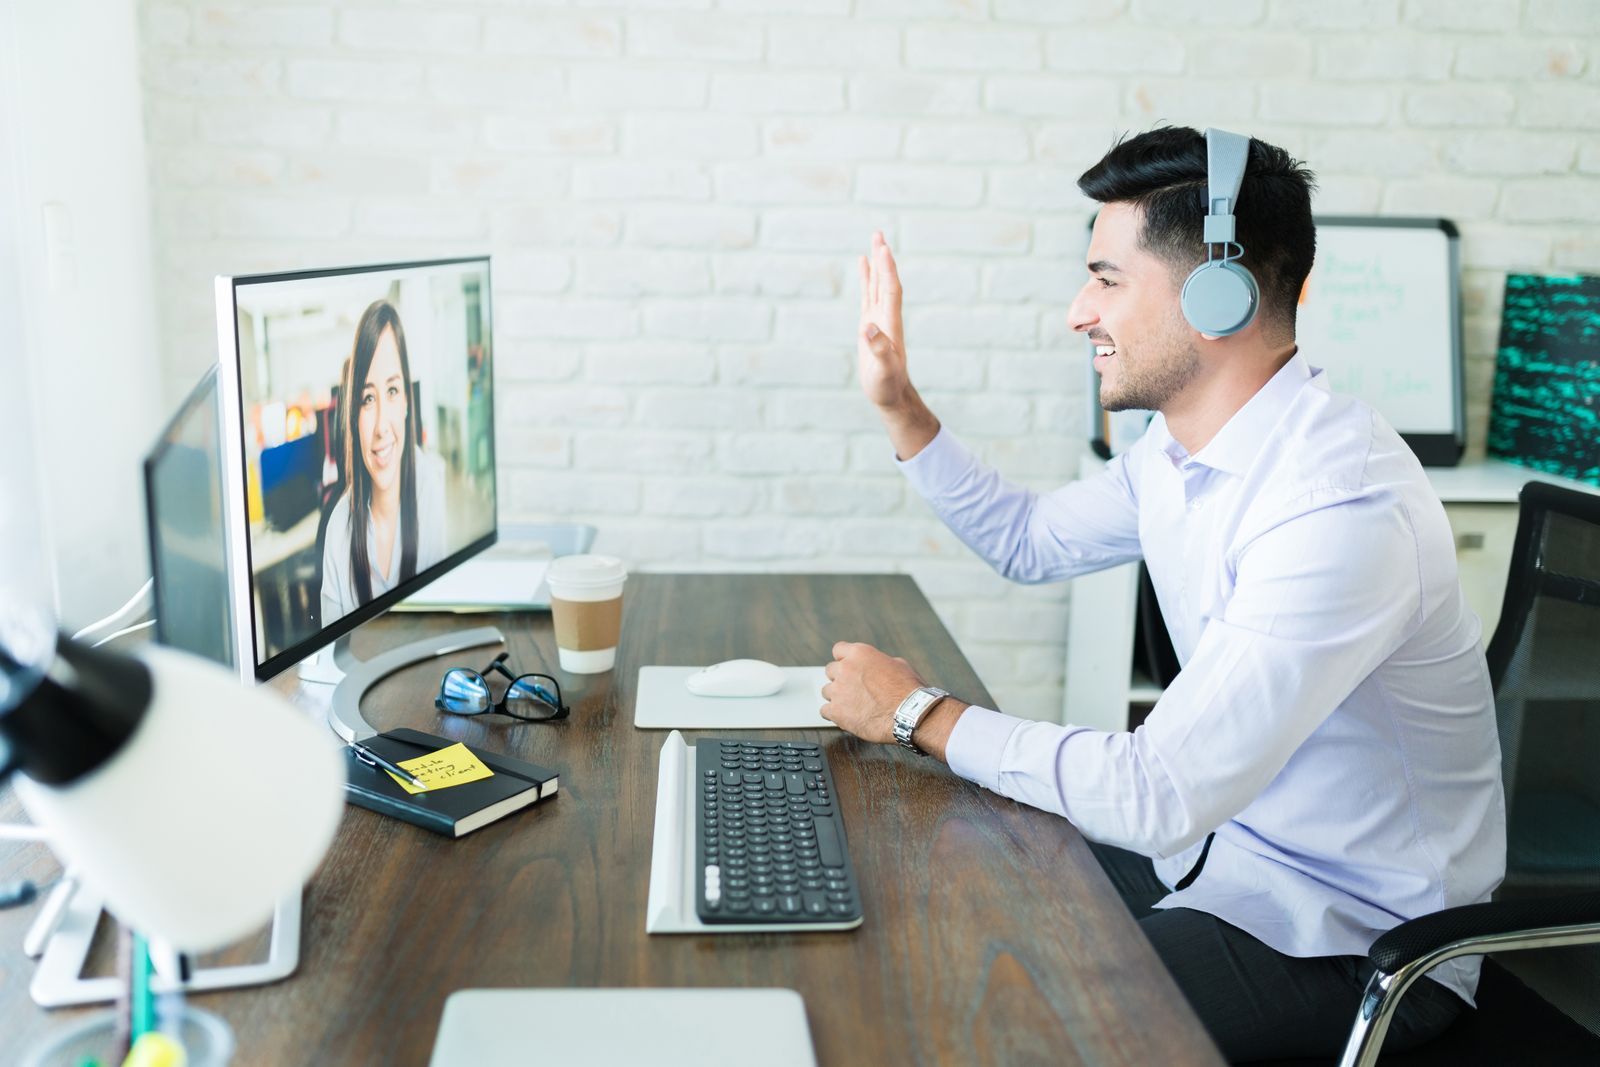 Young man videoconferencing with his coworker